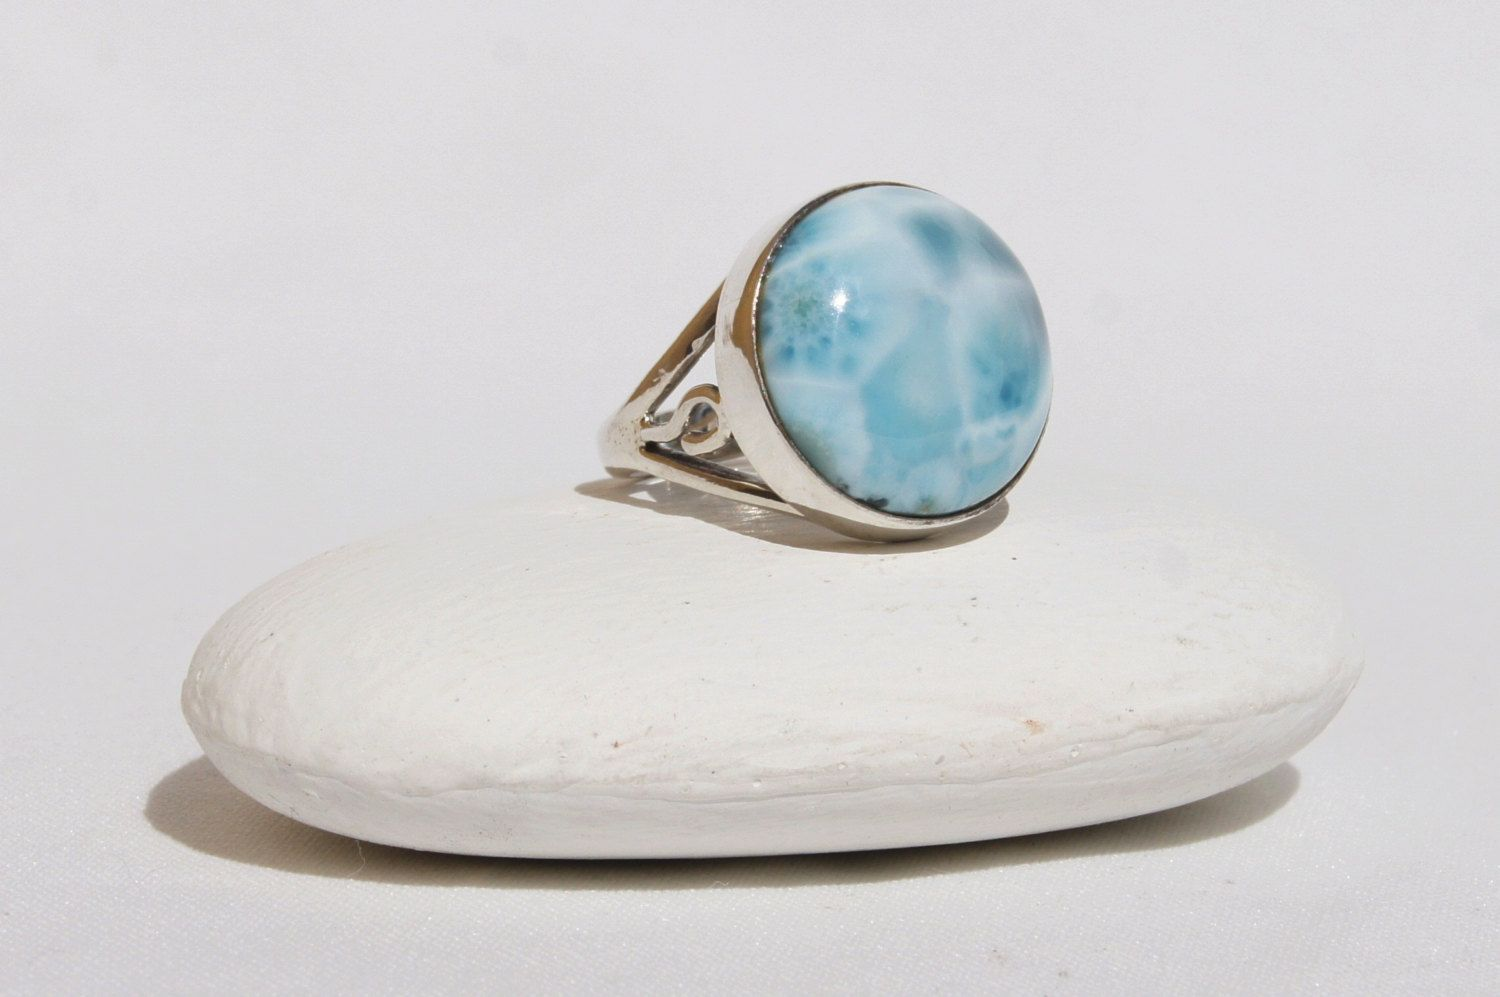 Larimar Pendant Original And Genuine Dominican AAA Handcrafted Marbled Oval Shape Larimar Stone 14K Yellow Gold Pendant Jewelry